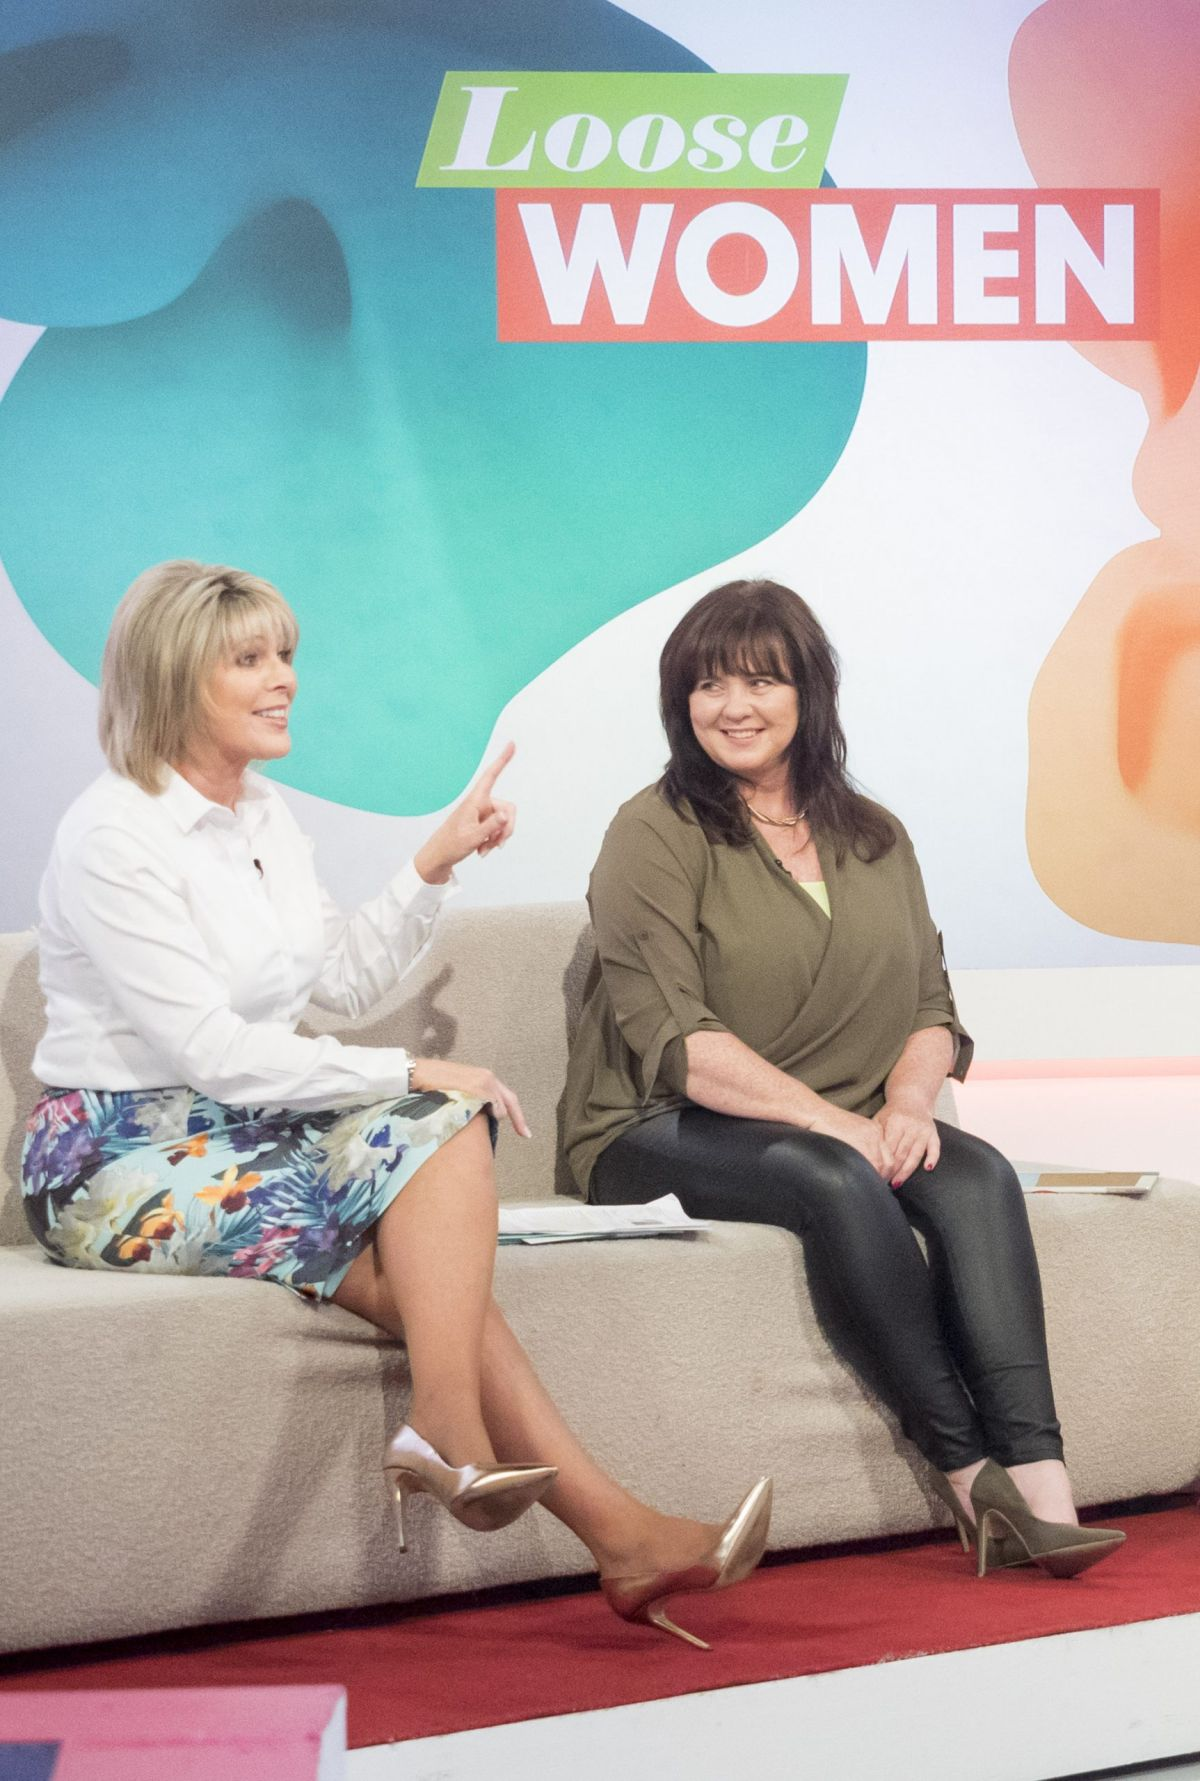 Jane McDonald Speaks Out On Possibility Of Loose Women